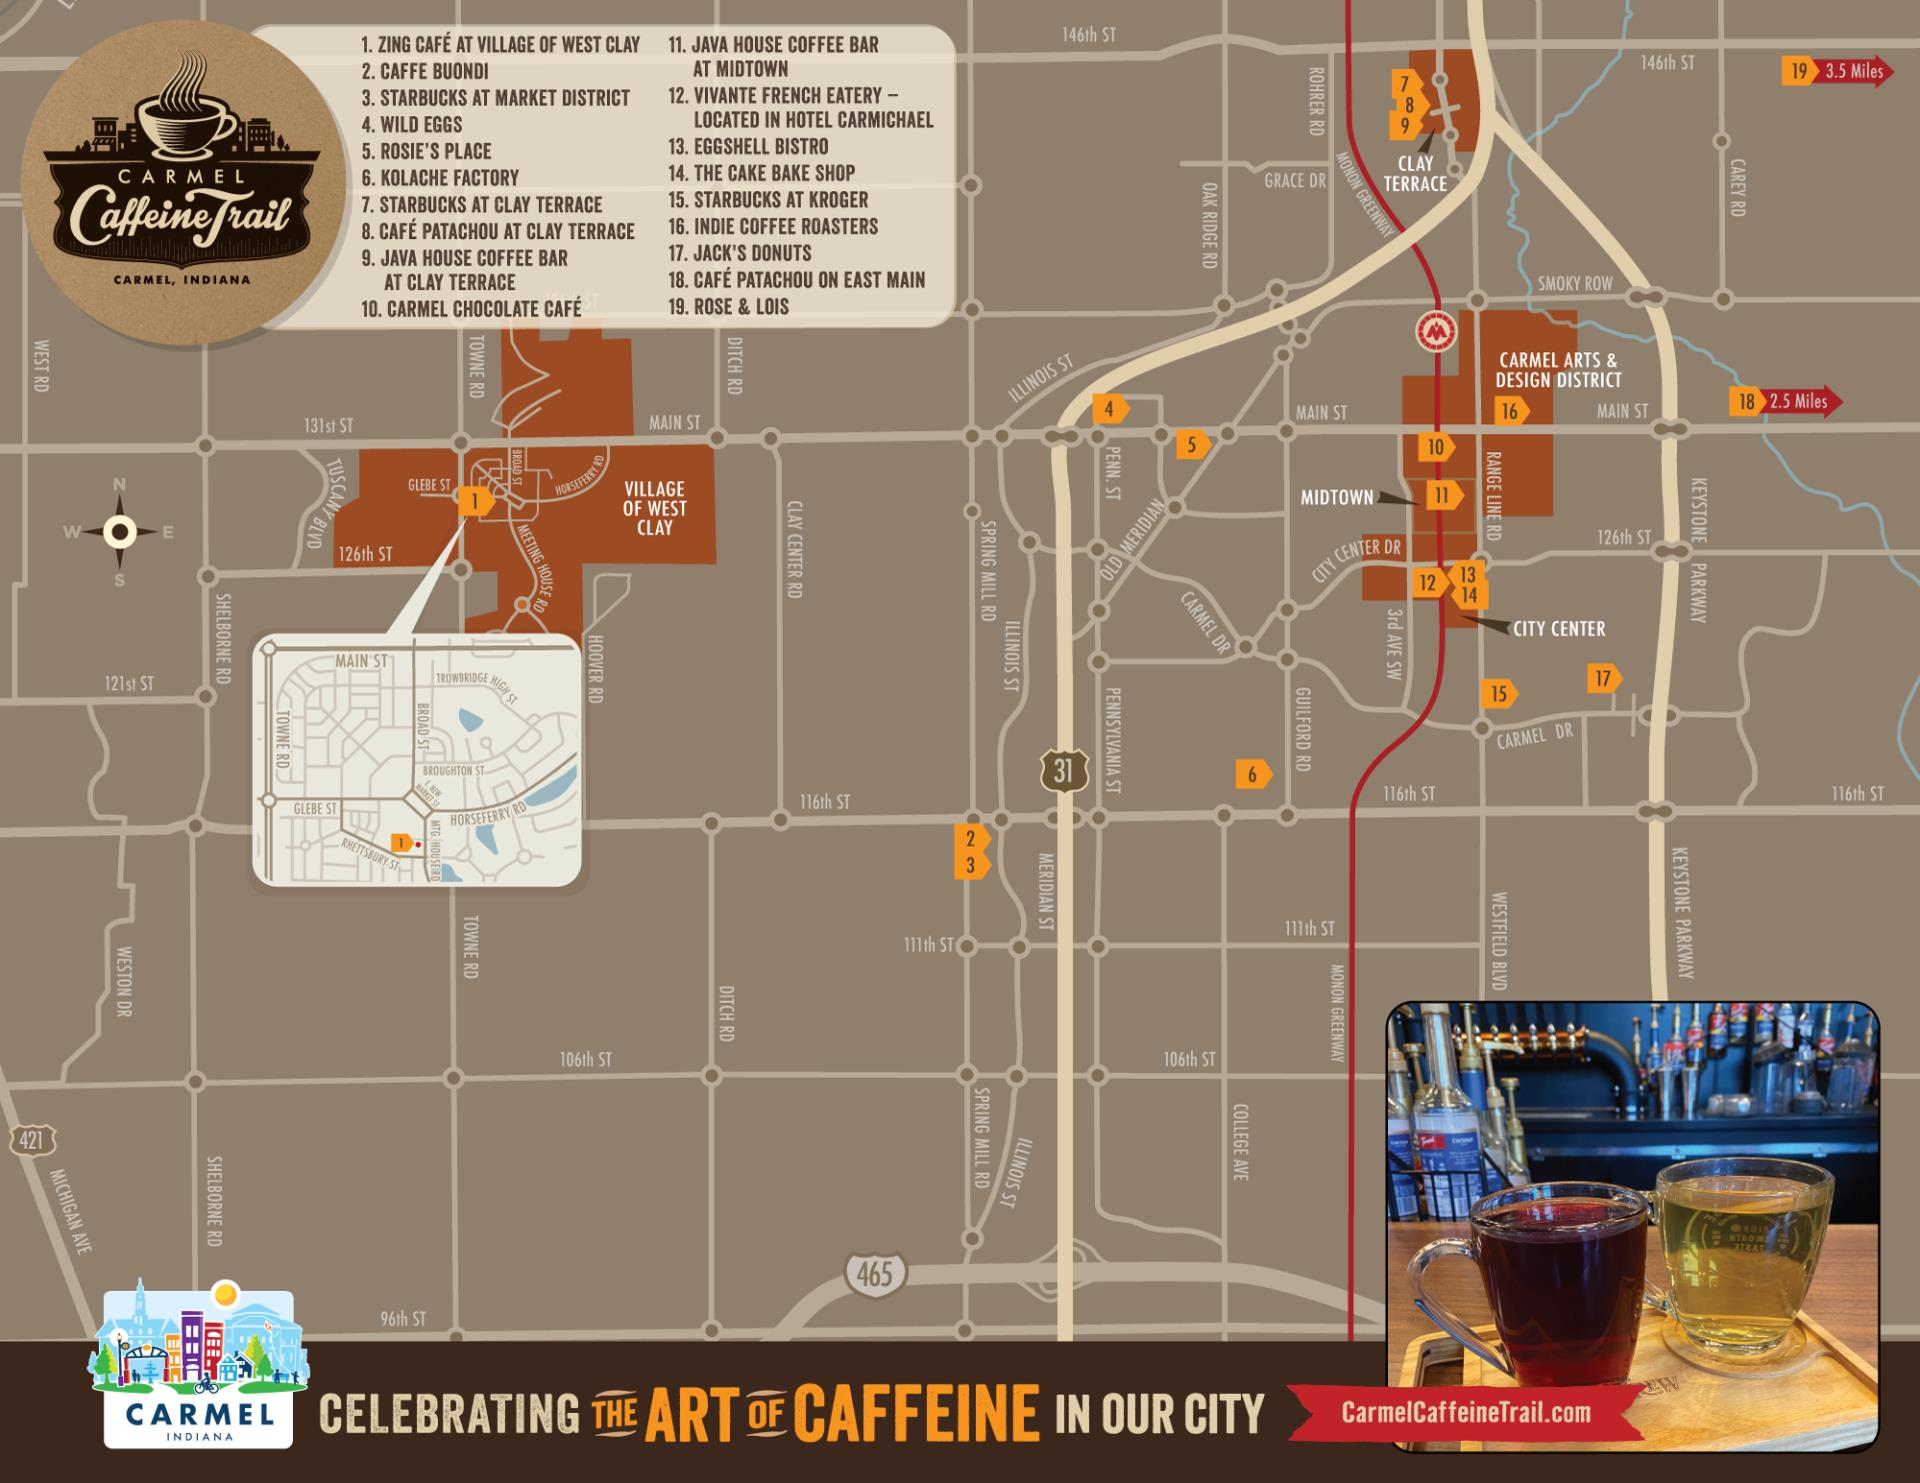 Carmel_Caff_Trail_map-small